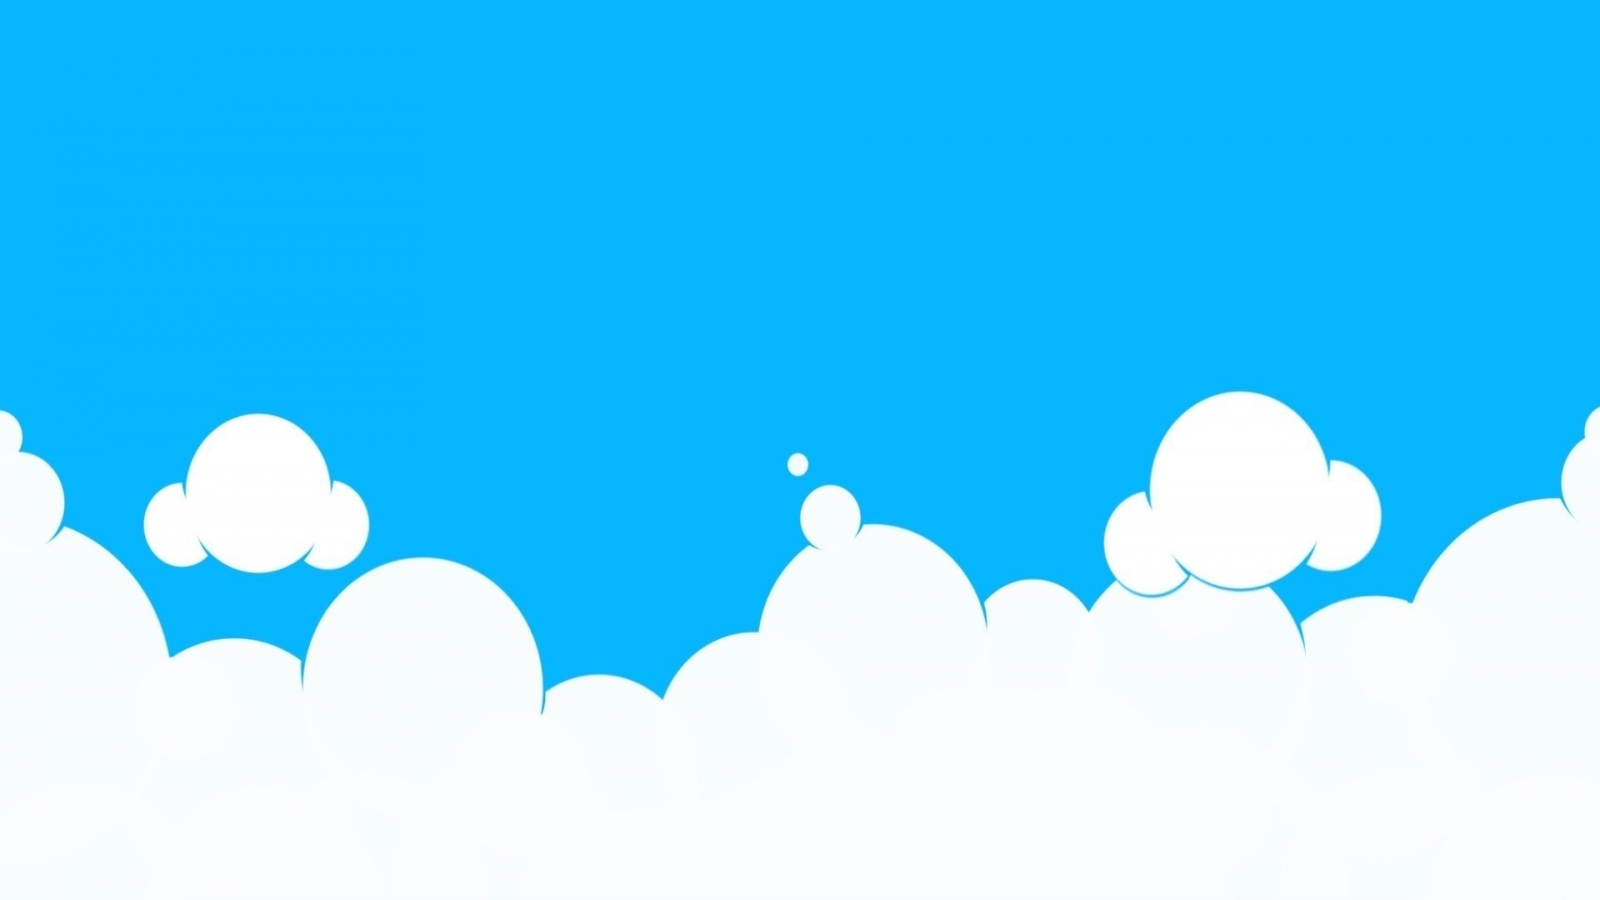 Clouds clipart blue background Background: blue background Free Images